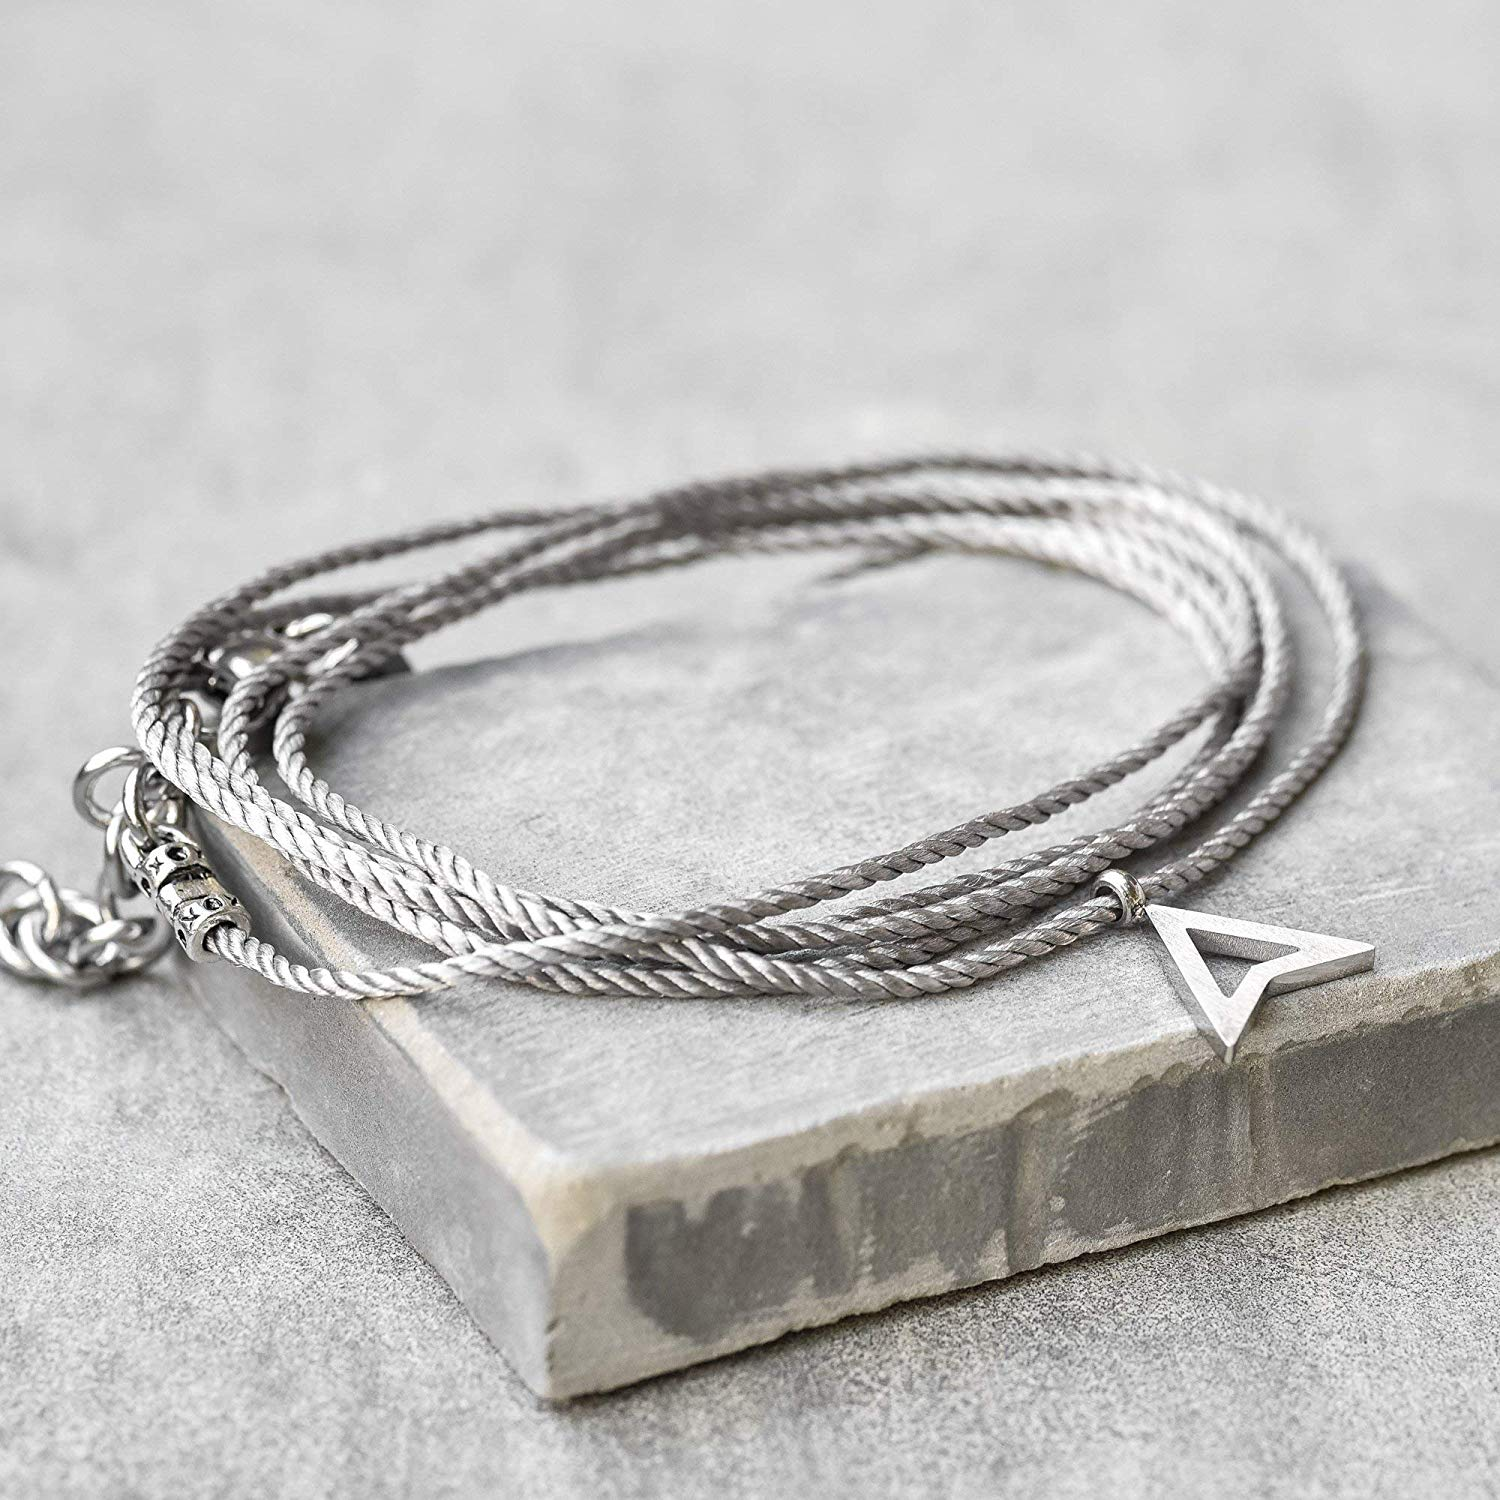 Handmade Wrap Gray Fabric Bracelet For Men Set With Stainless Steel Triangle Pendant By Galis Jewelry - Wrap Bracelet For Men - Black Bracelet For Men - Jewelry For Men